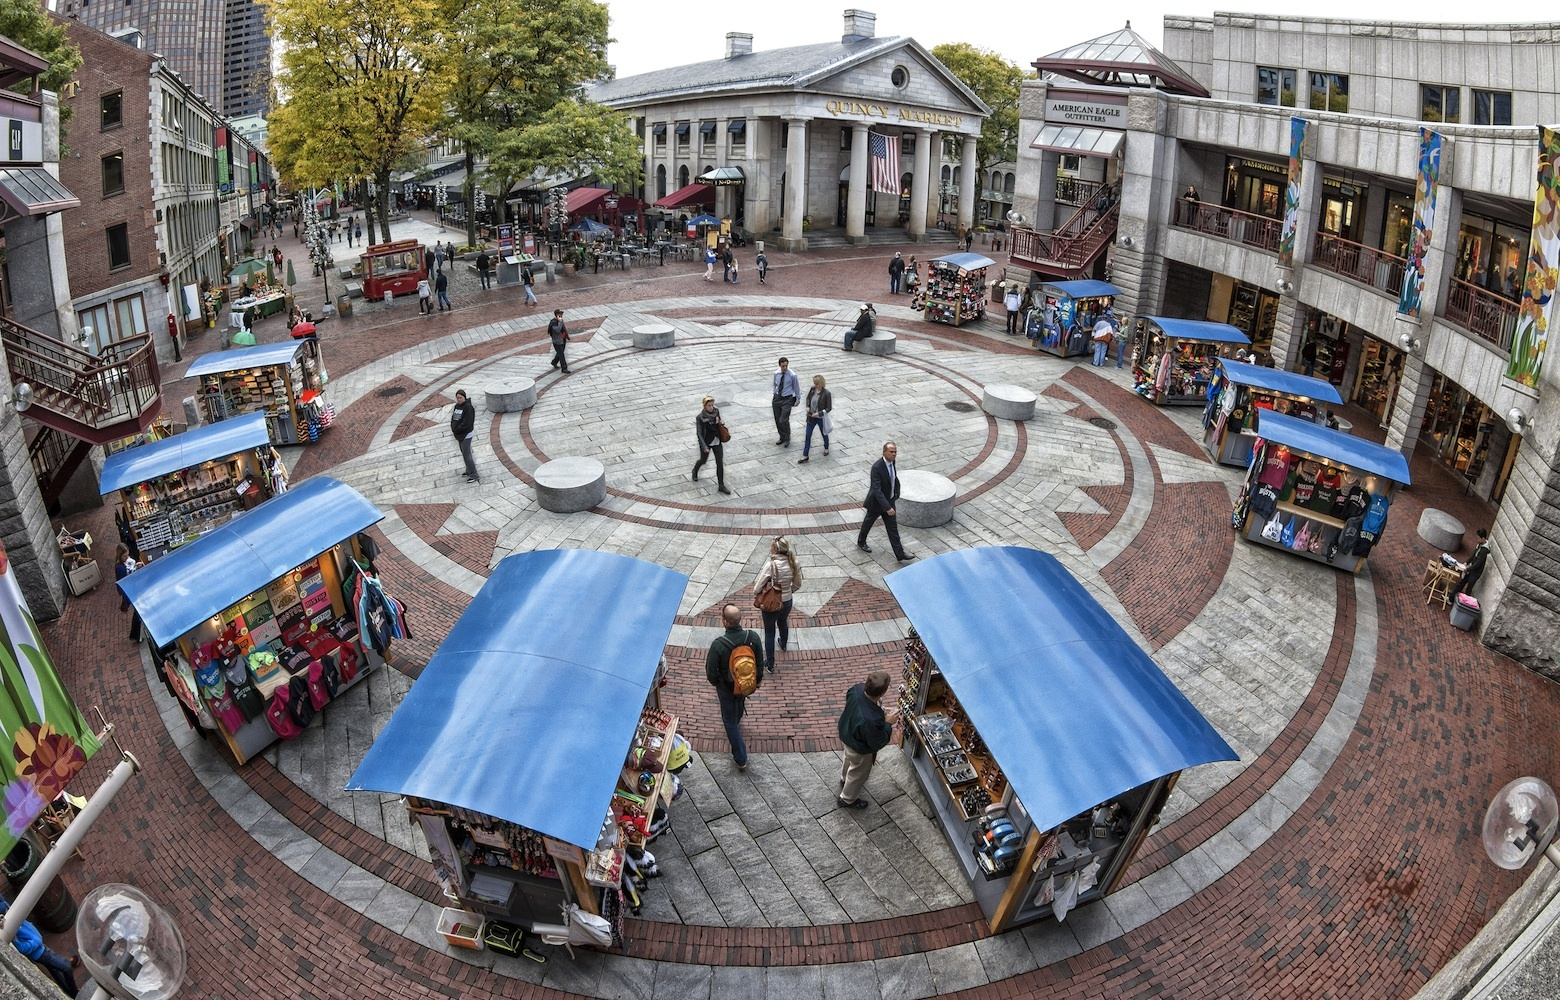 Experience Faneuil Hall and Quincy Market